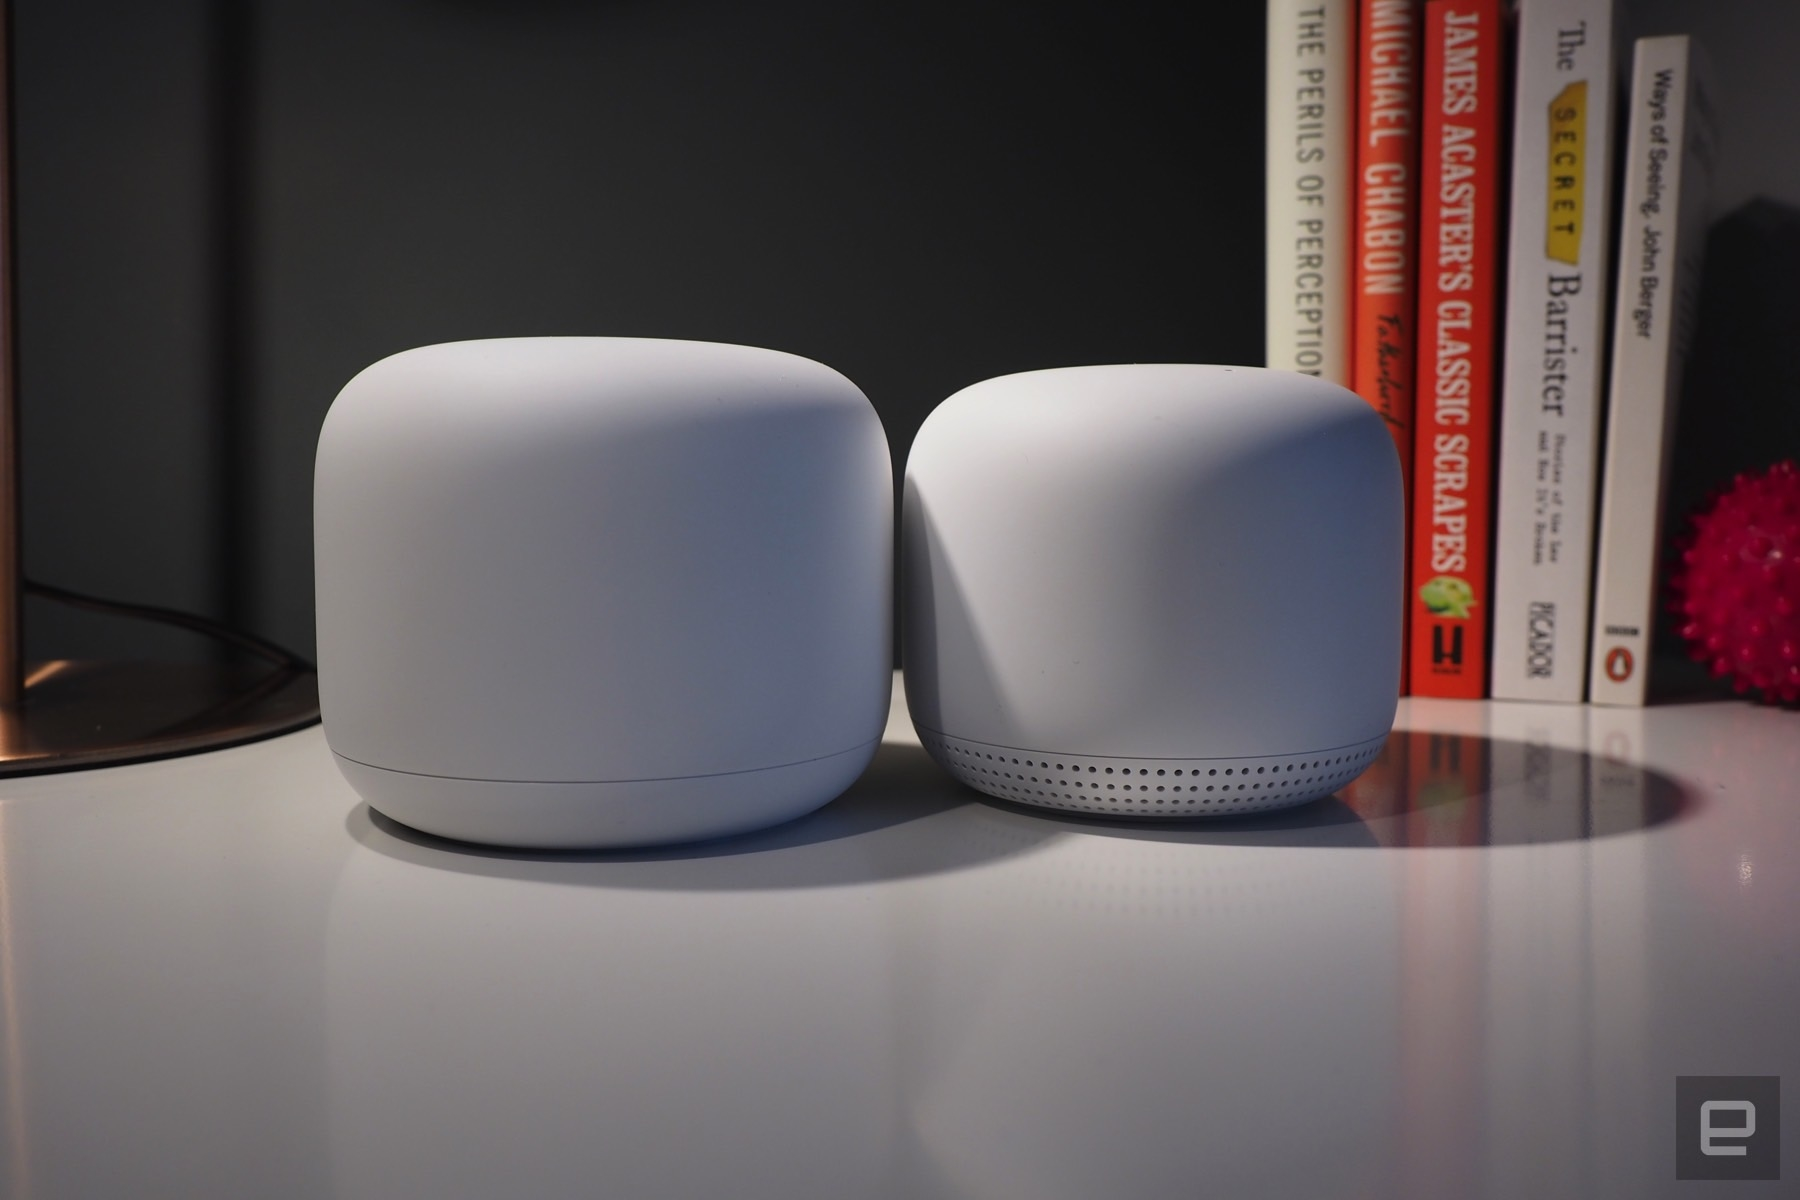 Get Google's Nest WiFi router and one access point for $199 | DeviceDaily.com